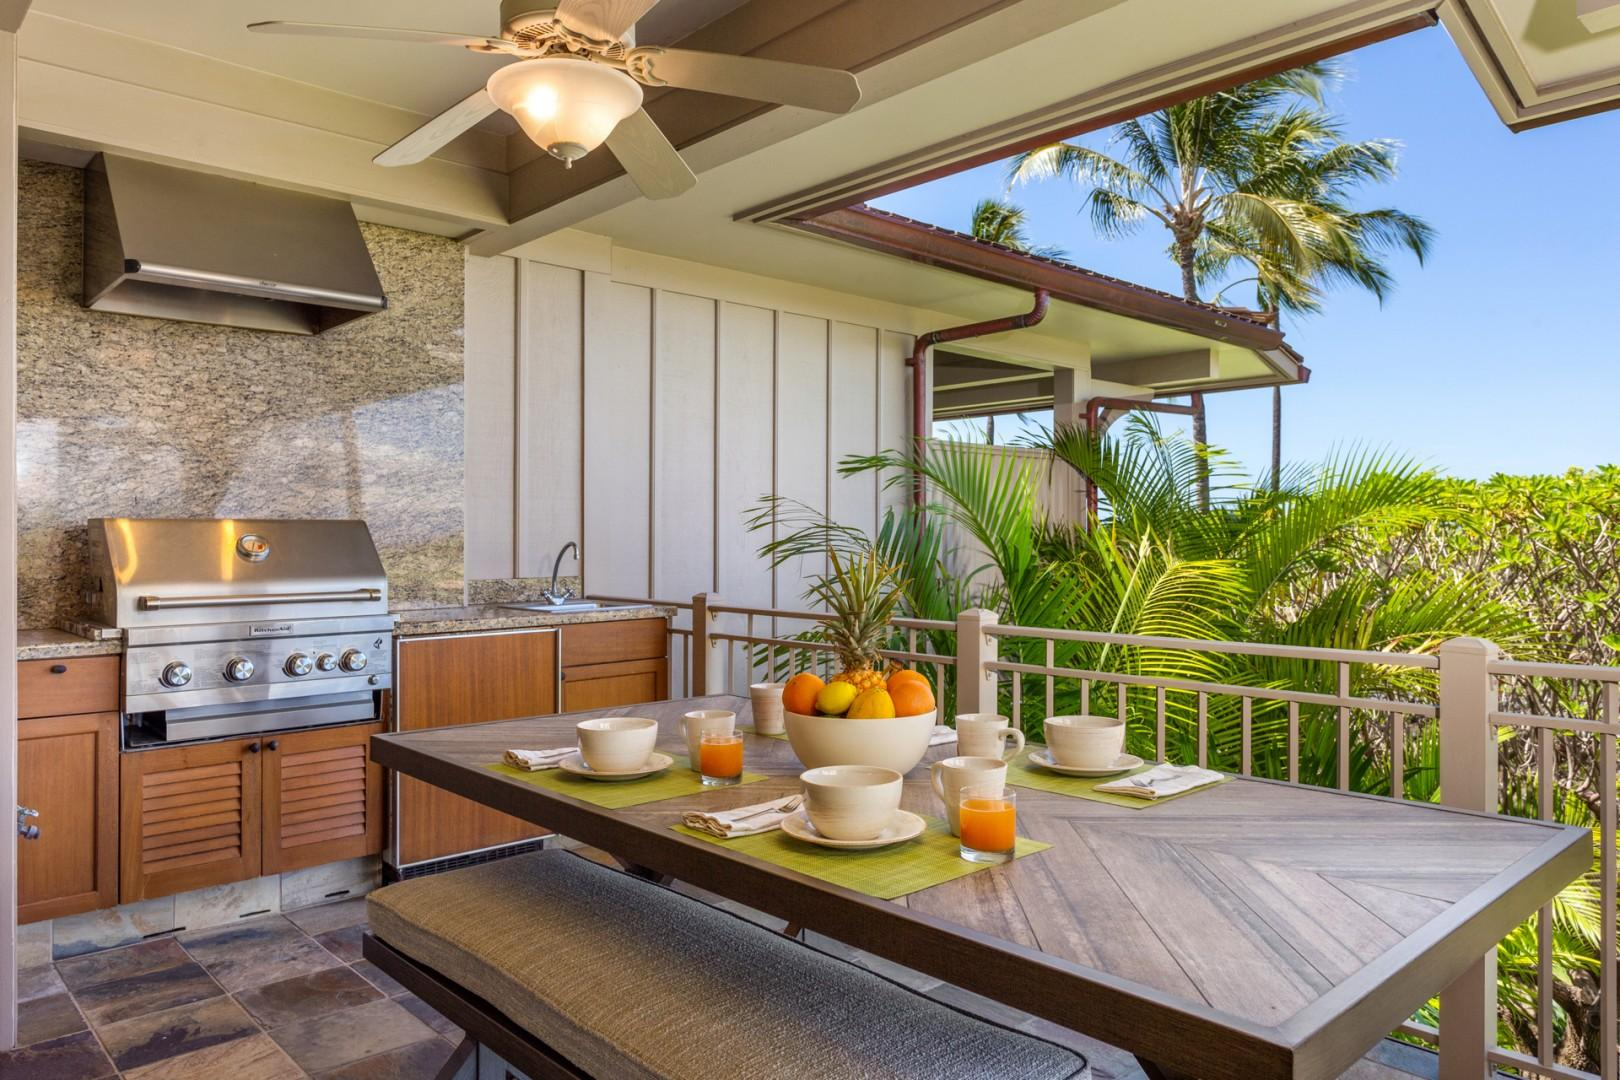 BBQ grill, large dining table and ample plush seating on the lanai - perfect for living and lounging in paradise!